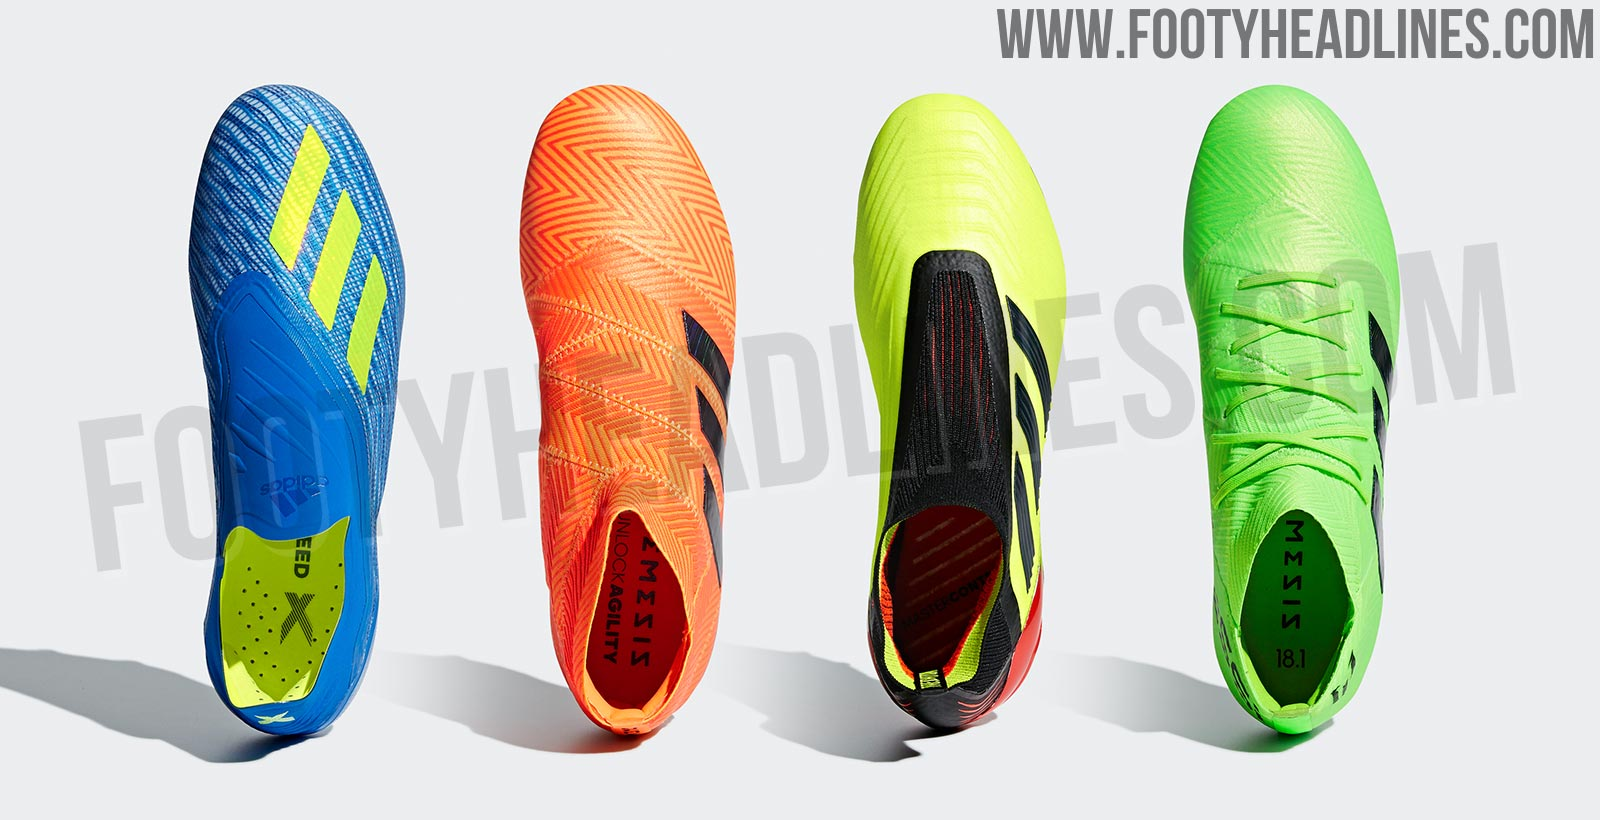 ed154798d The Adidas 2018 World Cup soccer cleats collection is called Adidas 'Energy  Mode Pack'. After Adidas' 2014 World Cup soccer cleats collection  introduced ...